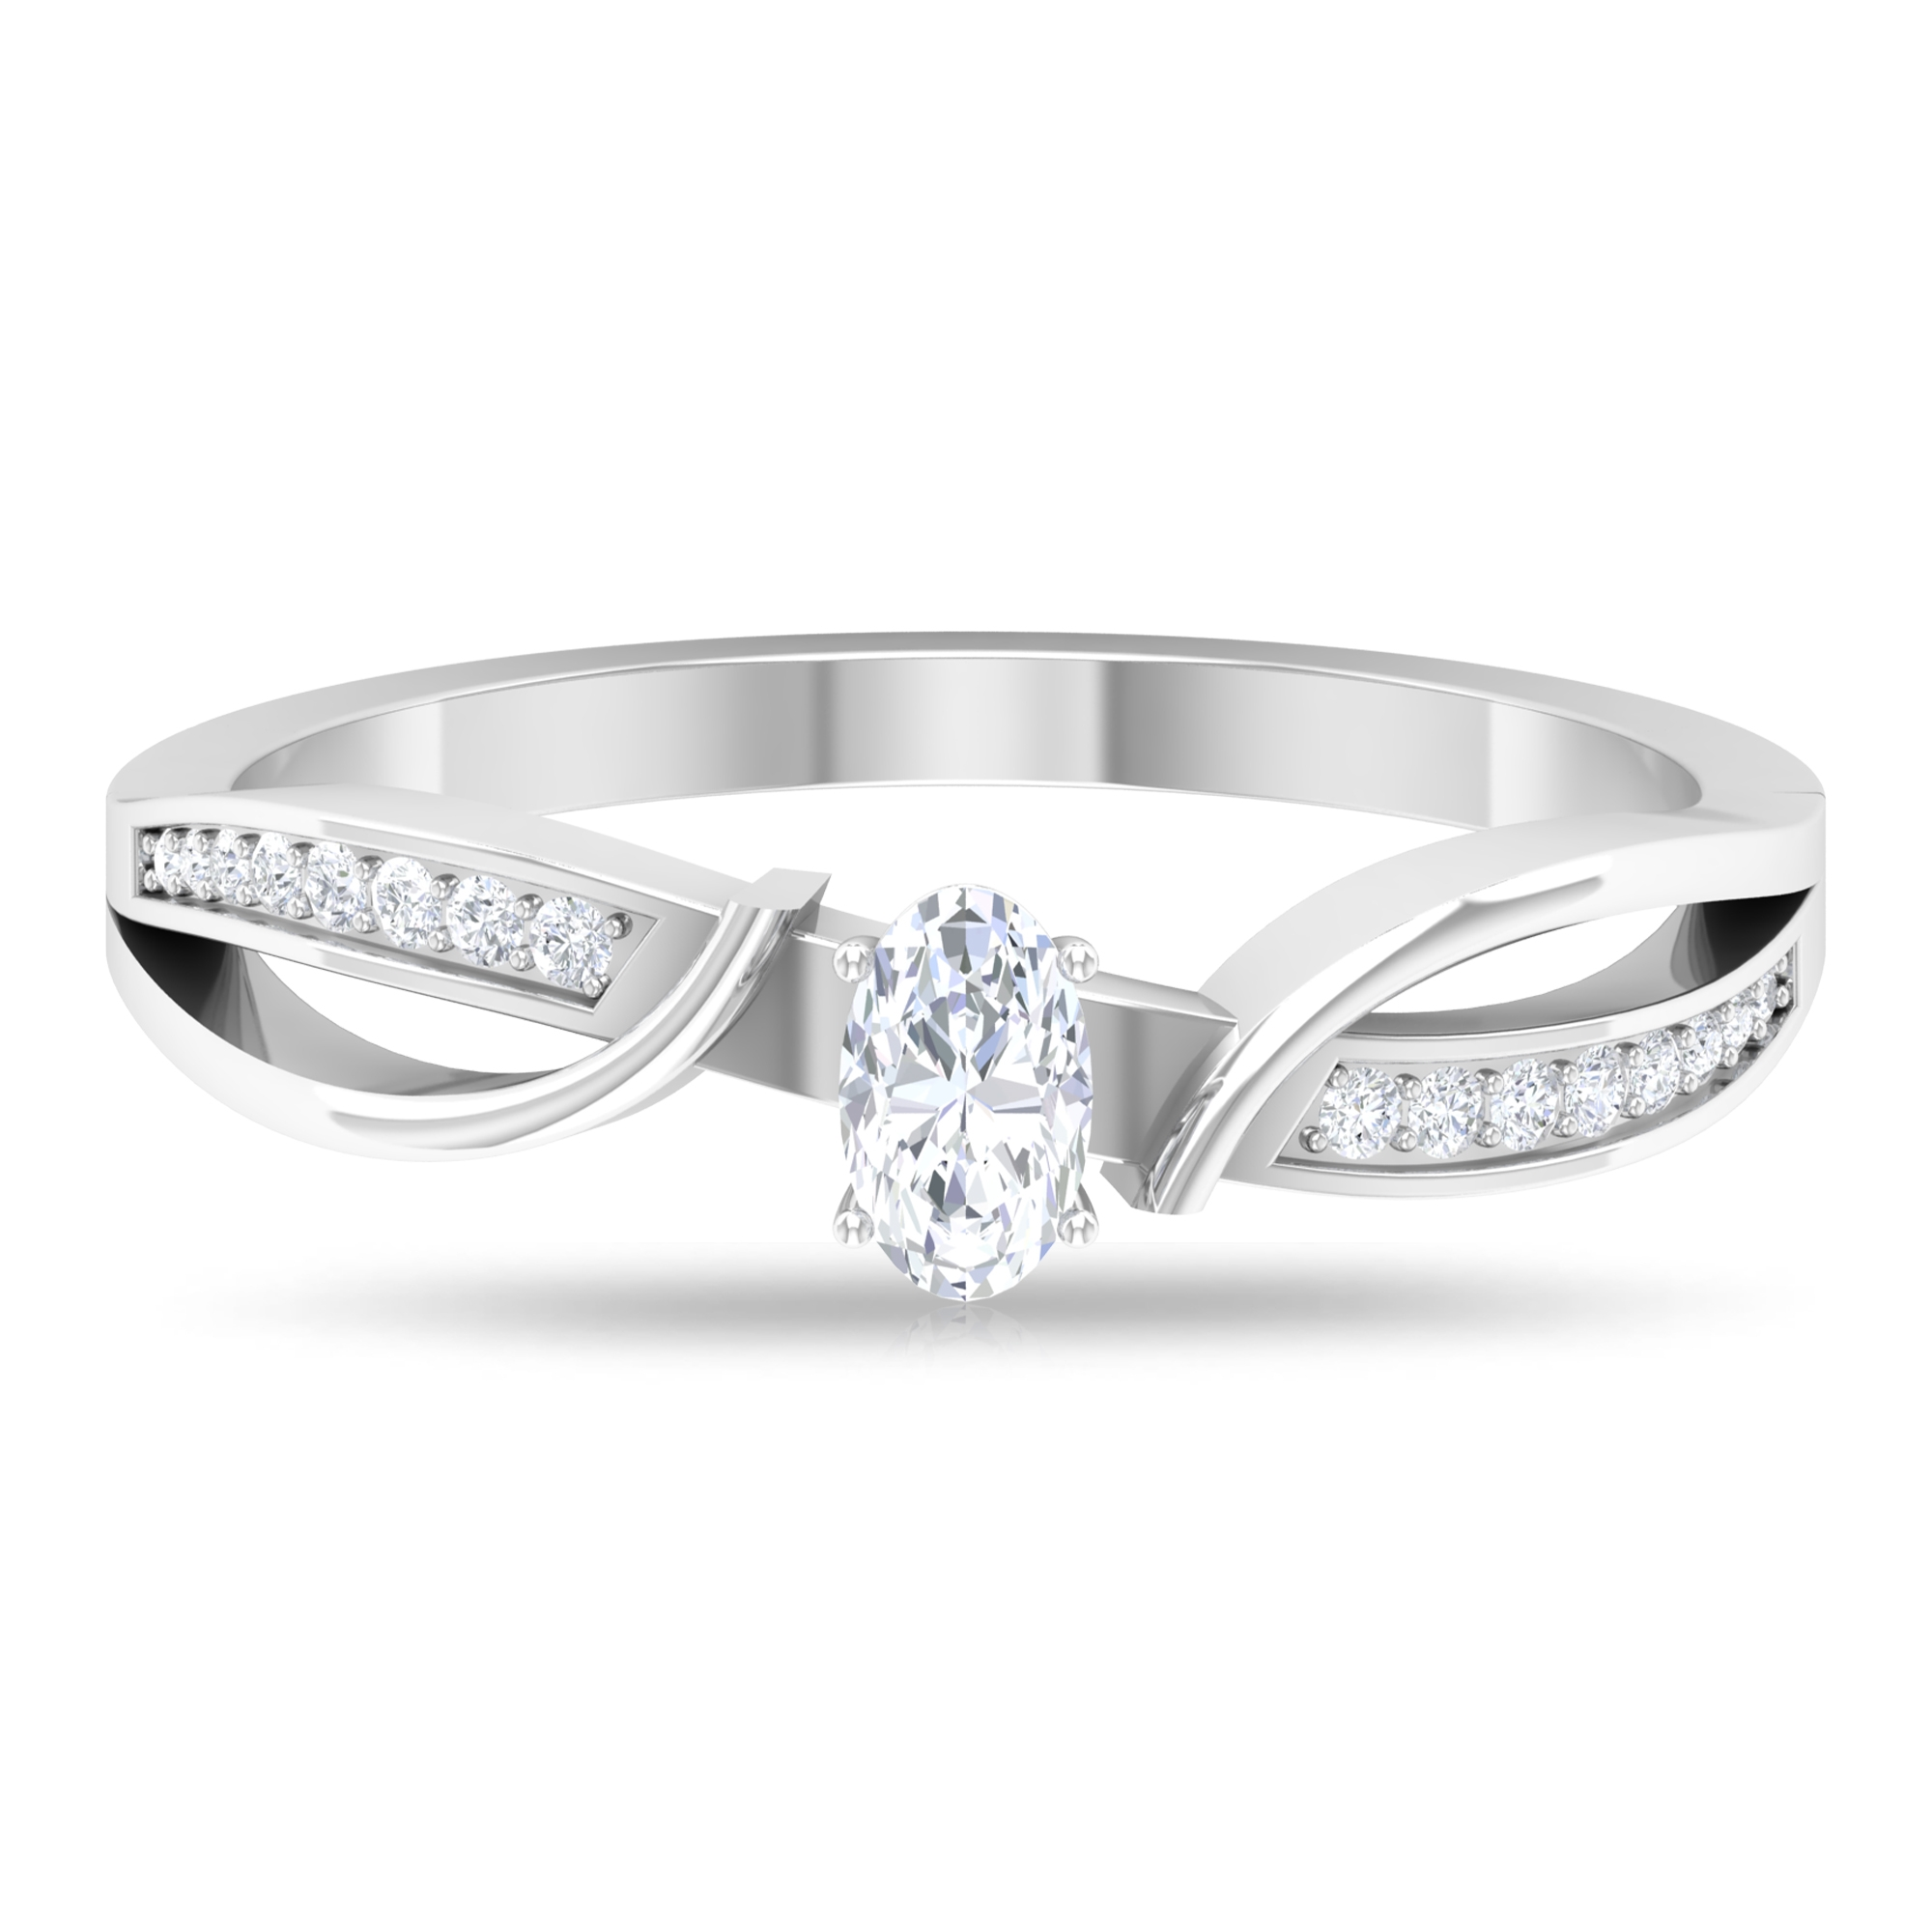 1/2 CT Oval Cut Diamond Solitaire Crossover Anniversary Ring in Prong Set